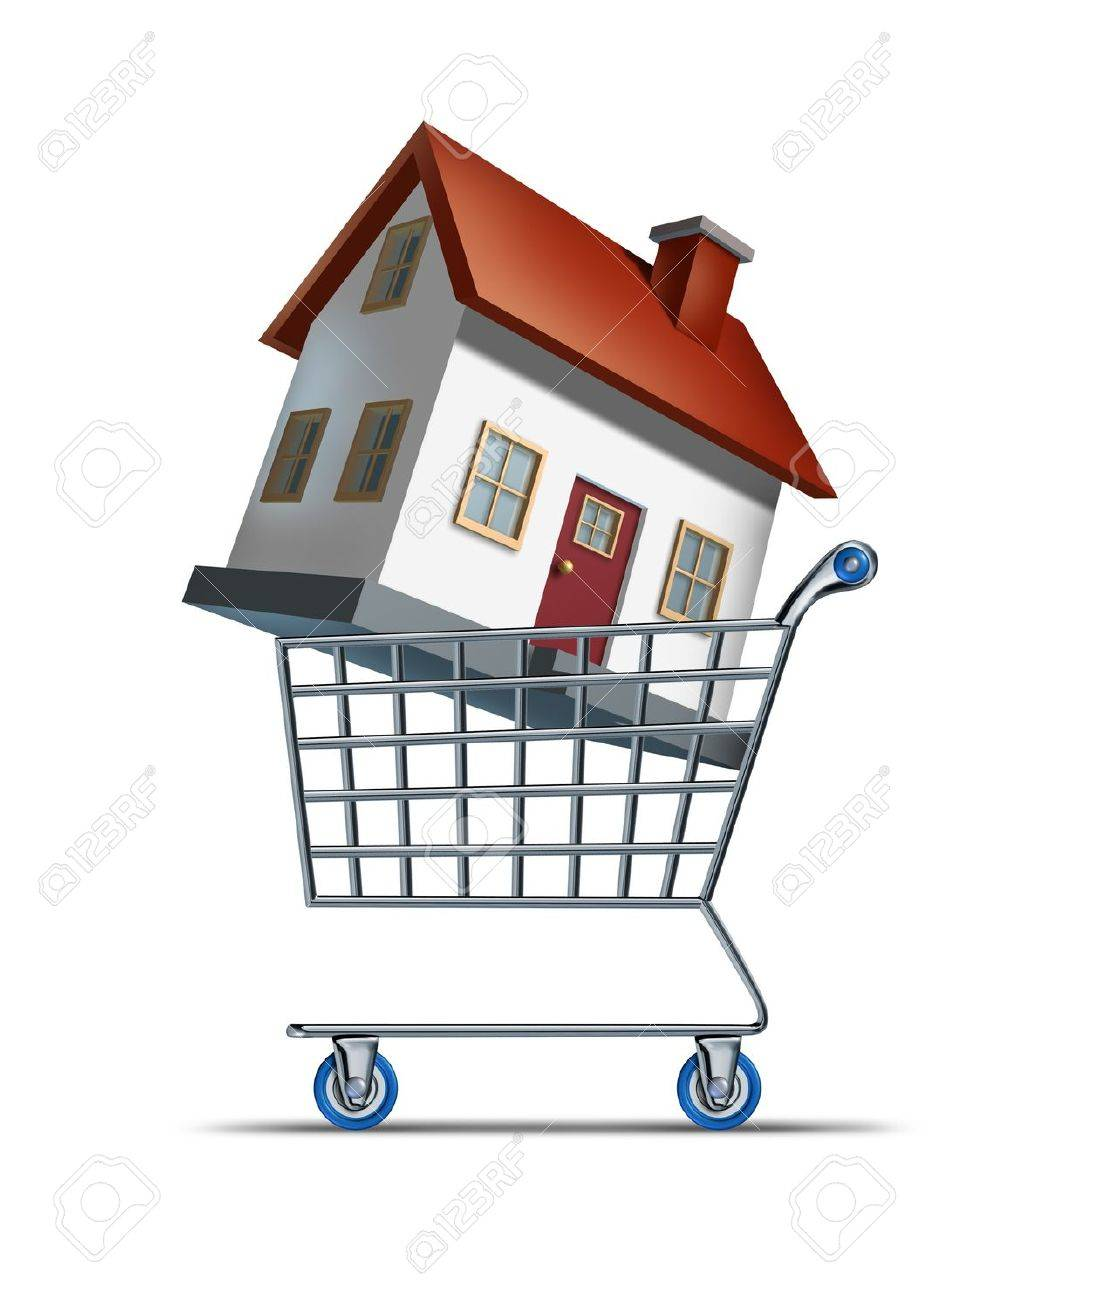 House shopping and buying homes as a real estate  market symbol with a shop cart and a three dimensional family residence representing the building and construction industry sales on a whte background Stock Photo - 13559403